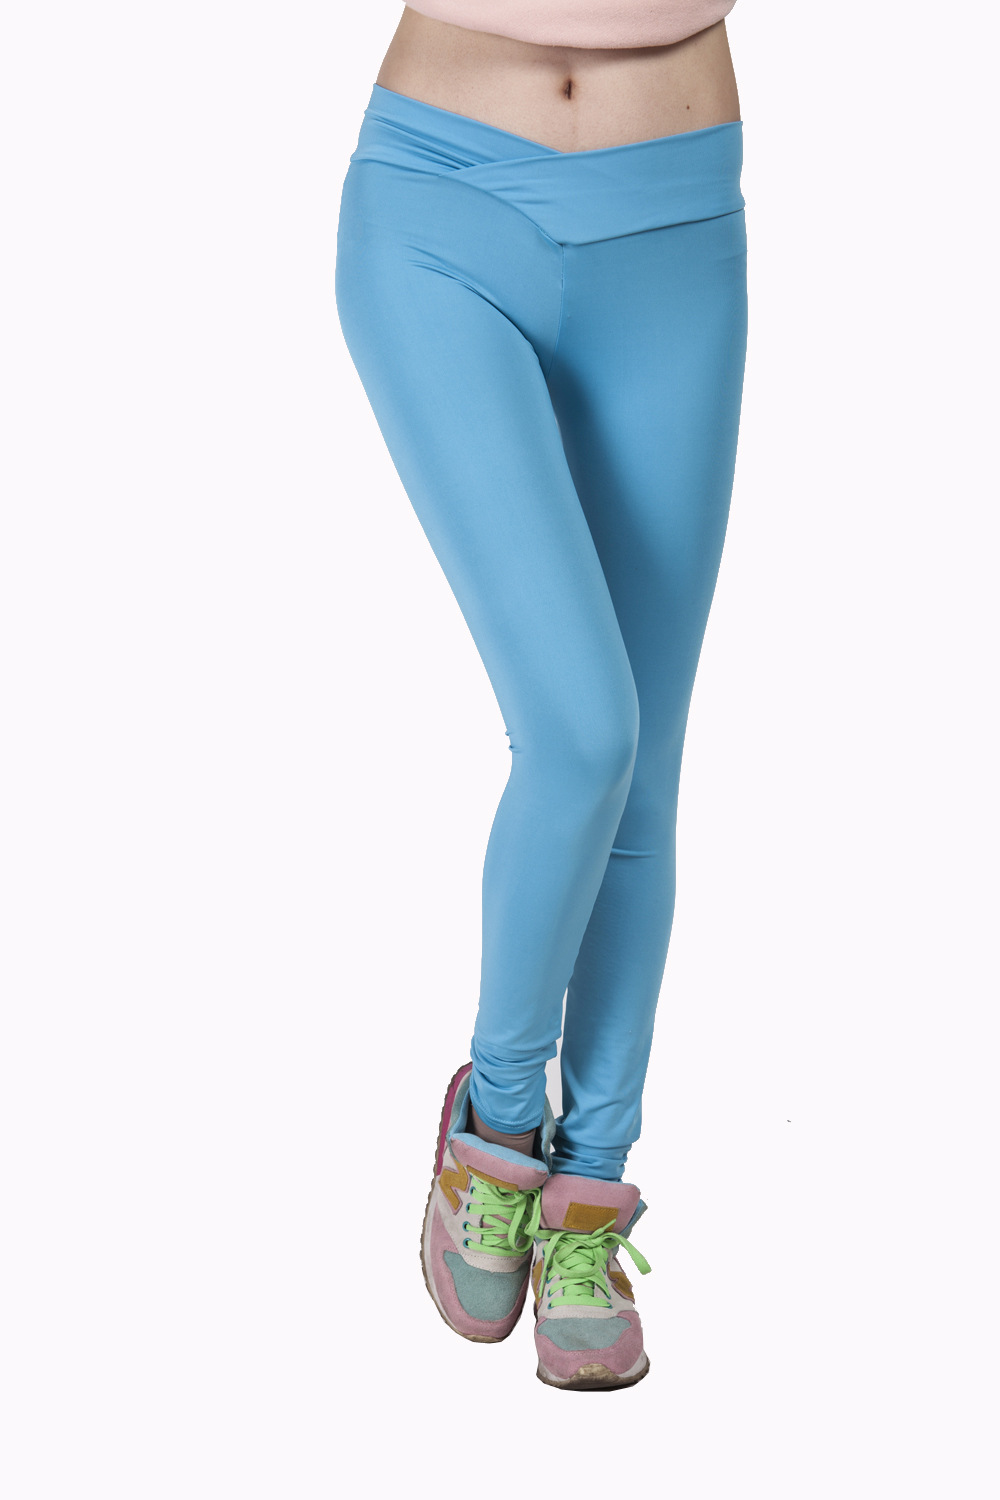 New Women High V-Waist Neon Candy Colorful Leggings Solid sportwear dancing girl's Pants Spring Autumn